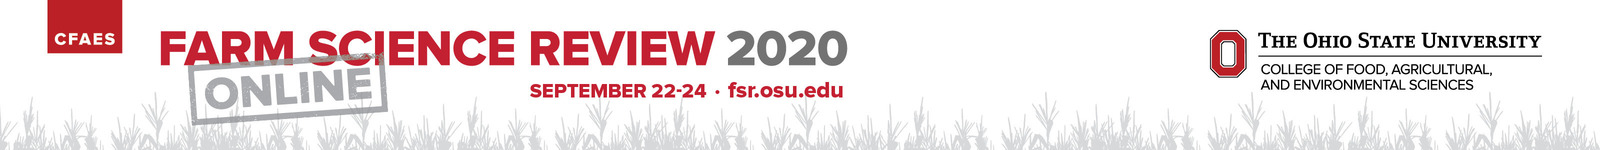 Farm Science Review 2020 logo